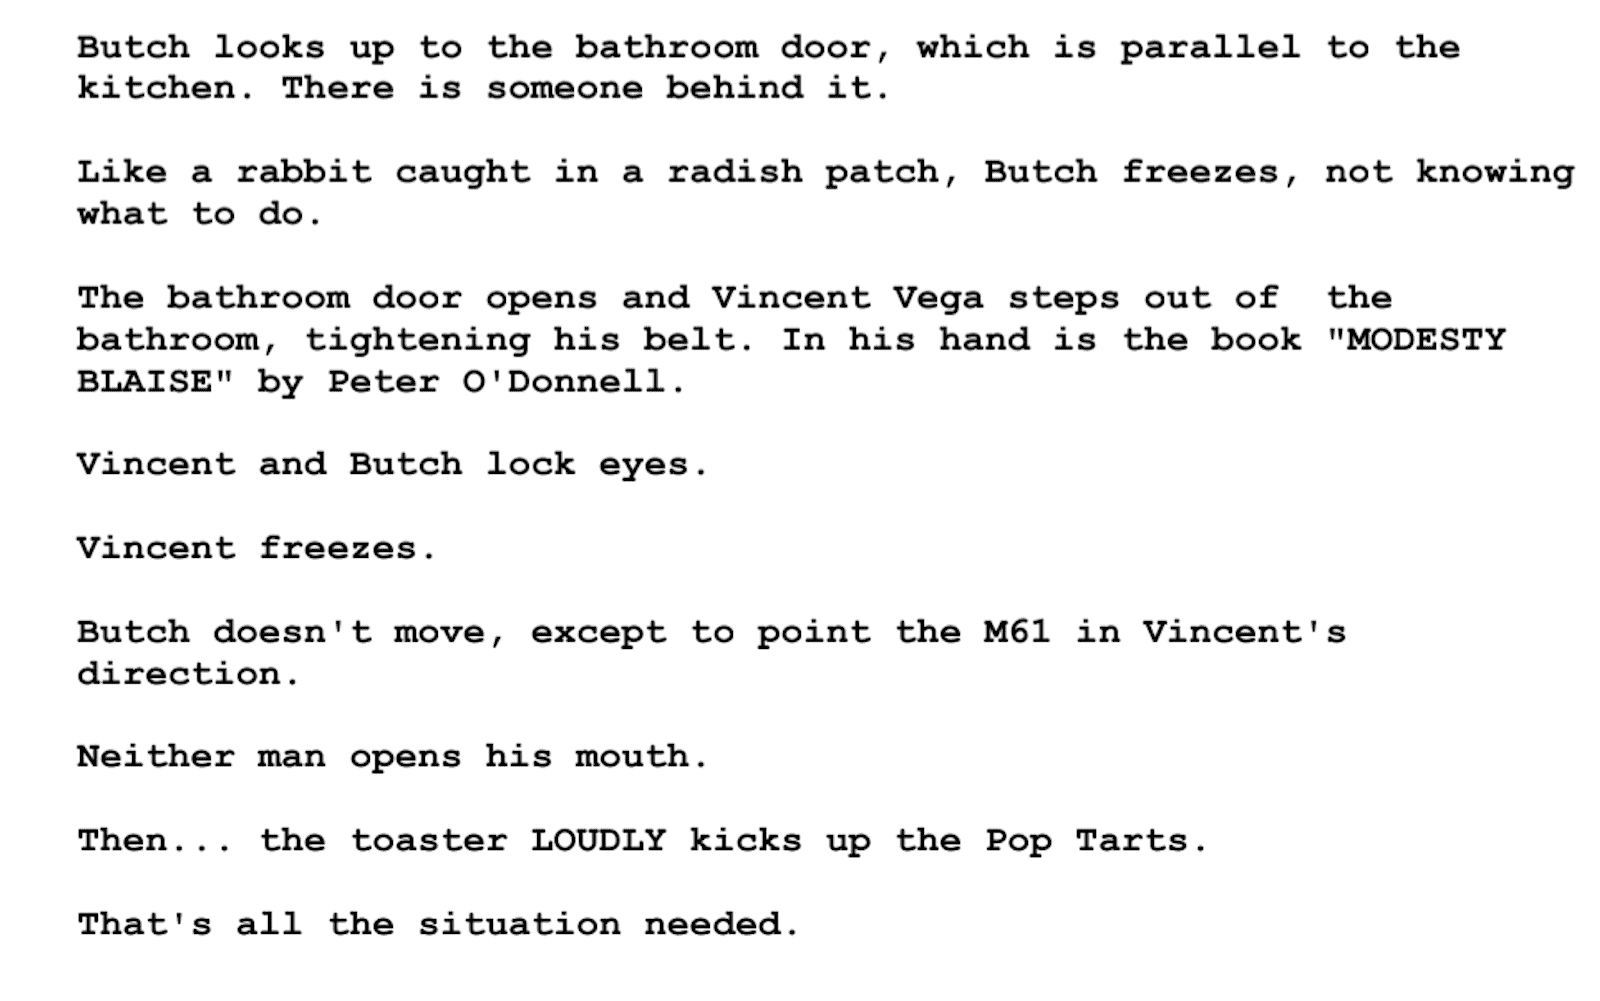 Screenplay Examples - Pulp Fiction Script - Screenplay Snippet 12 - Modesty Blaise